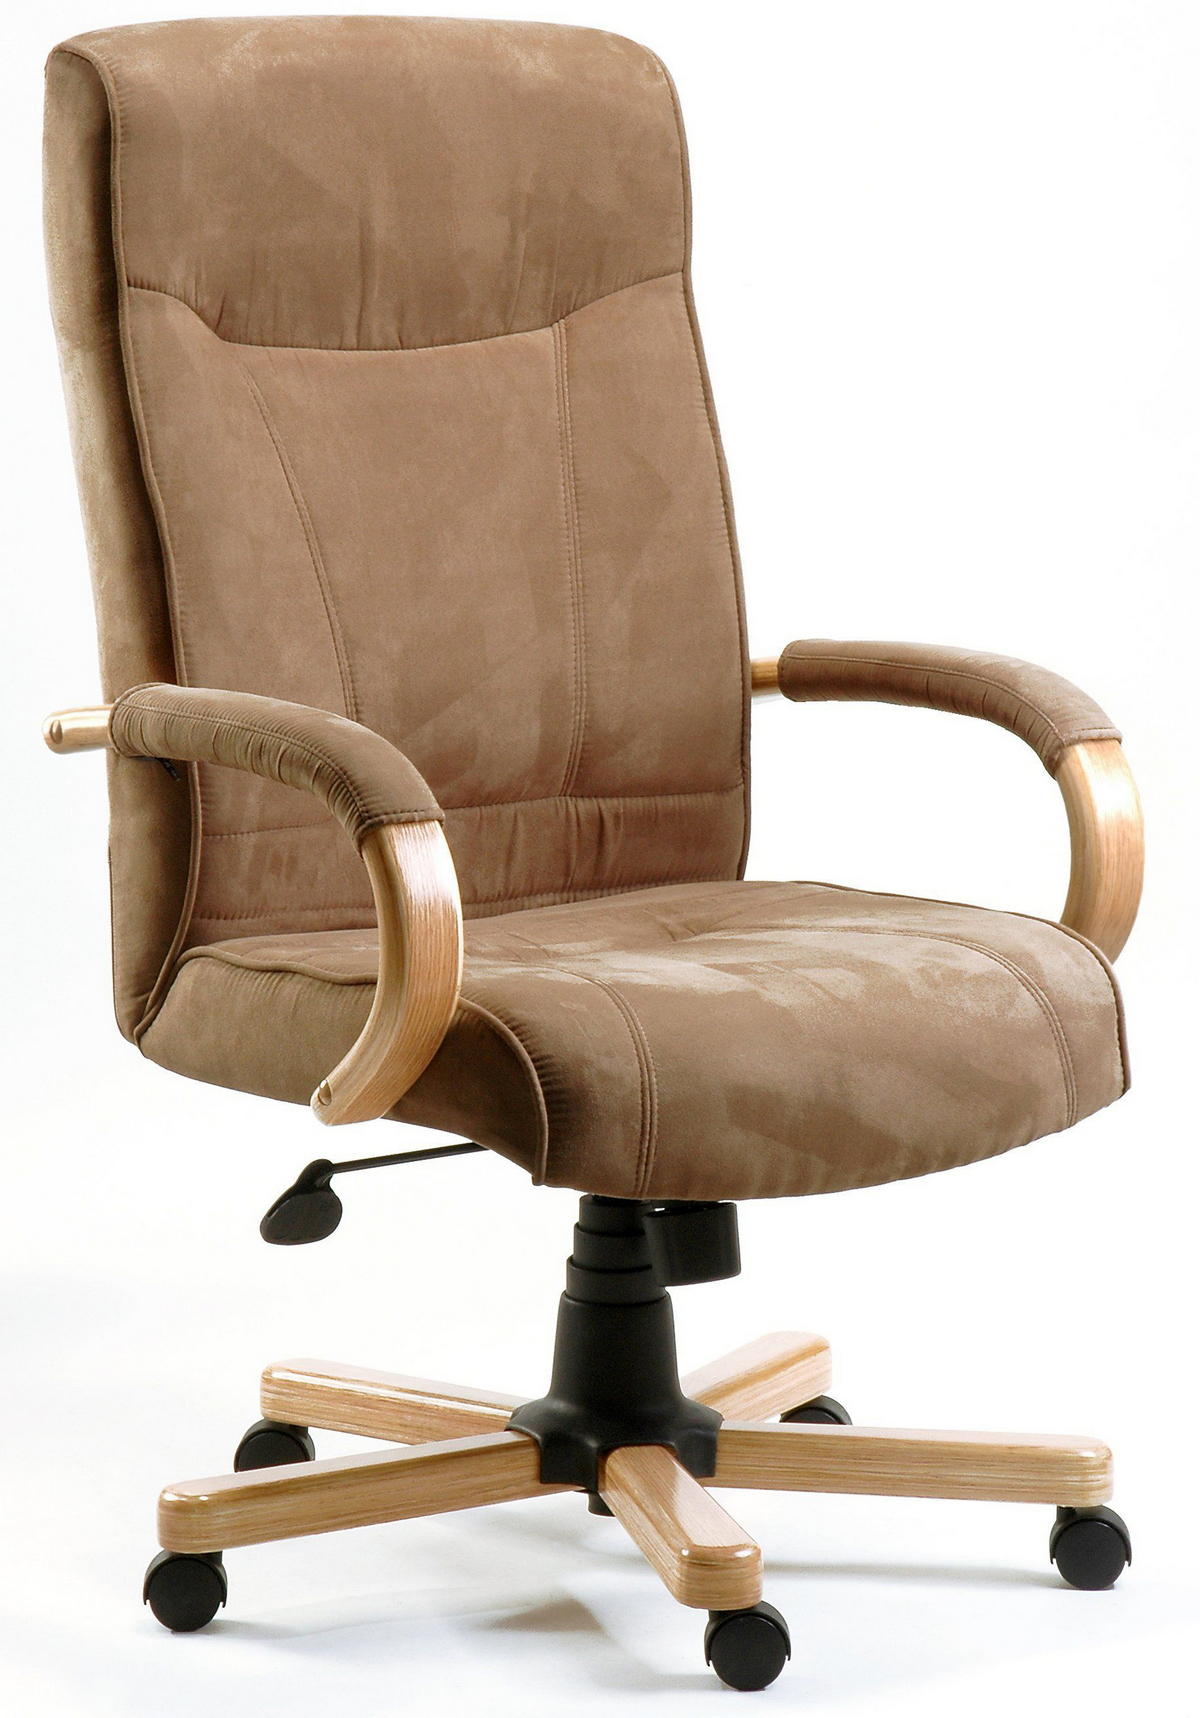 new office chair beige faux leather multi adjustable man agers chair